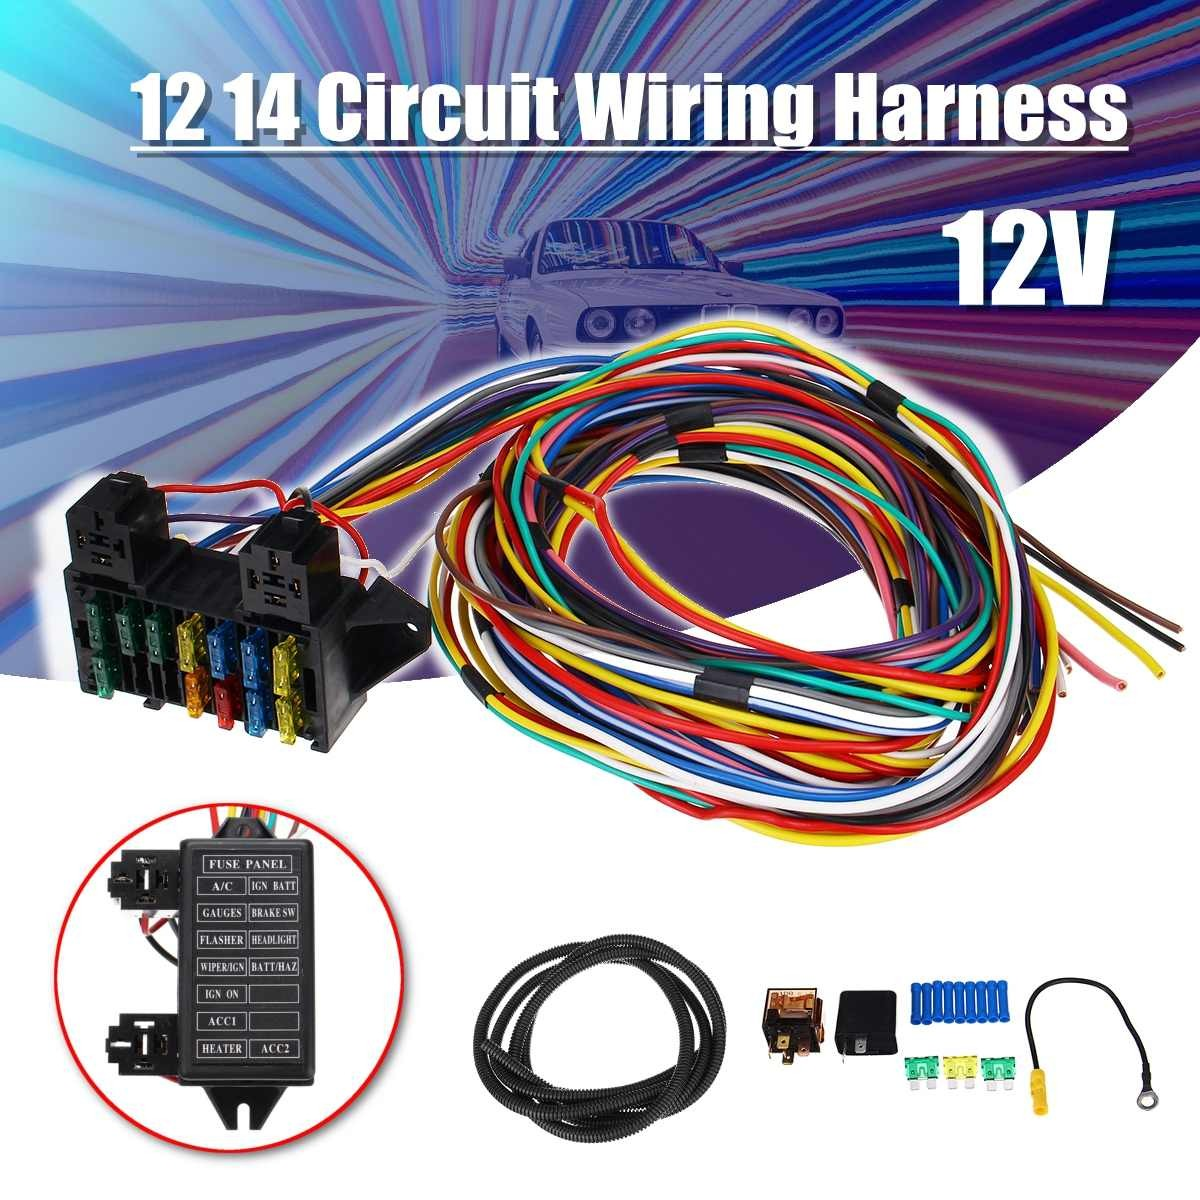 12 14 Circuit Universal Wiring Harness 14 Fuse 12V Muscle Car Hot R od Street R